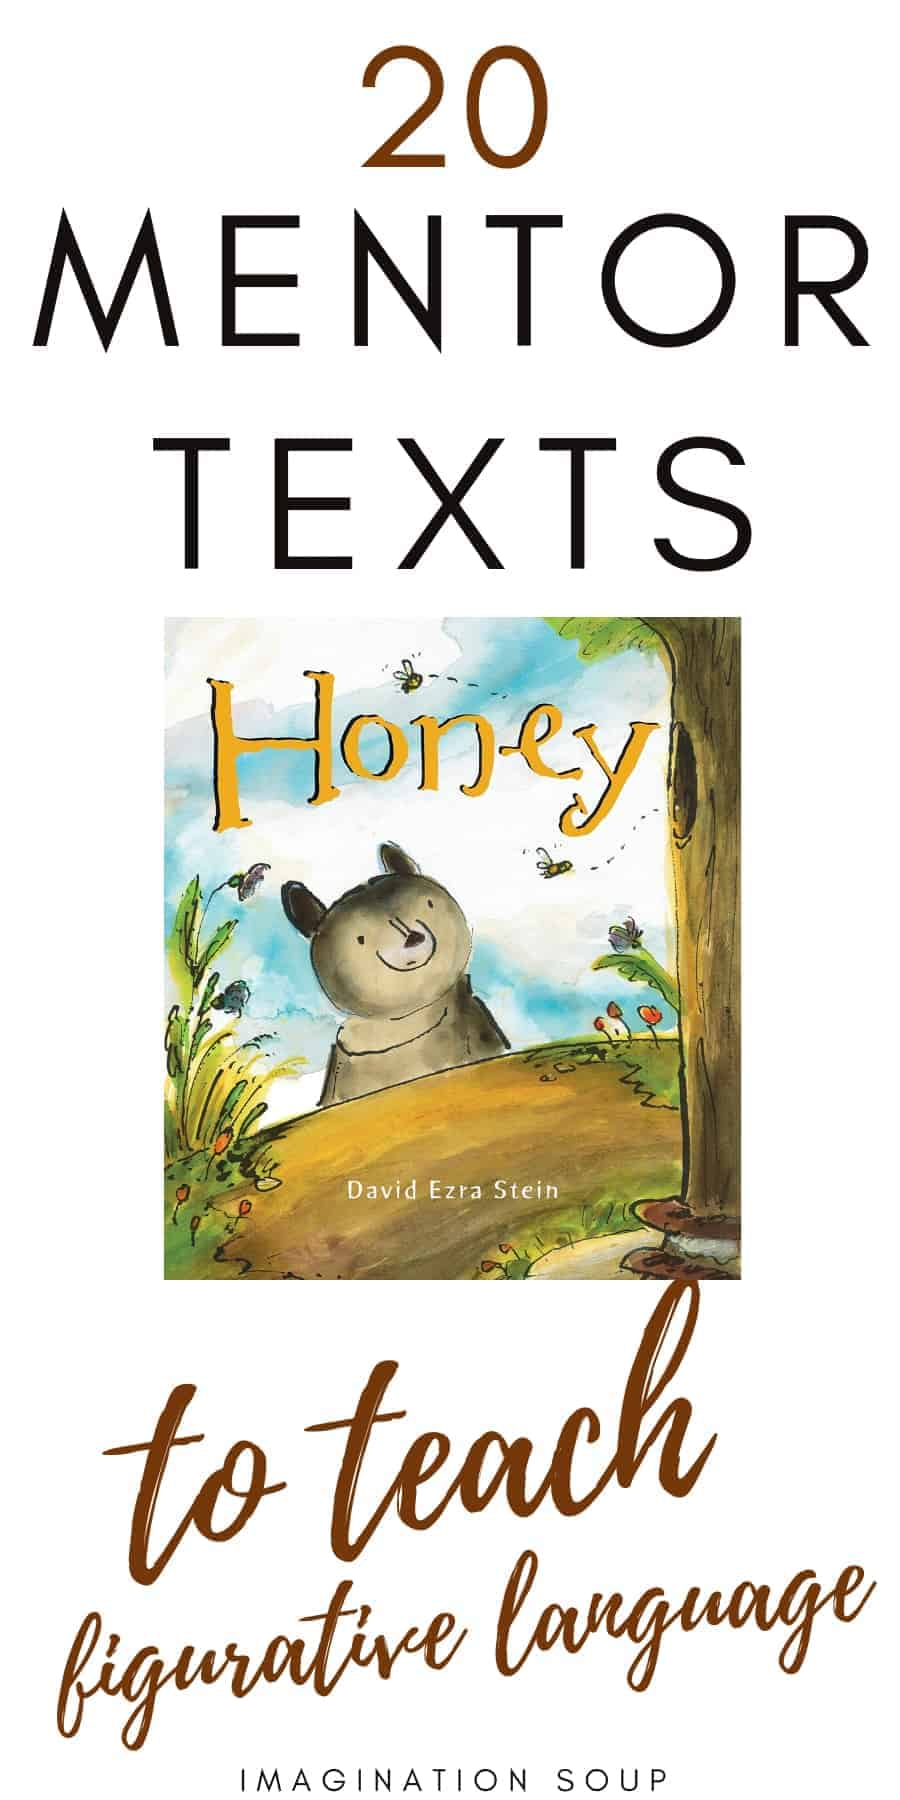 picture book mentor texts to teach similes and metaphors (figurative language)